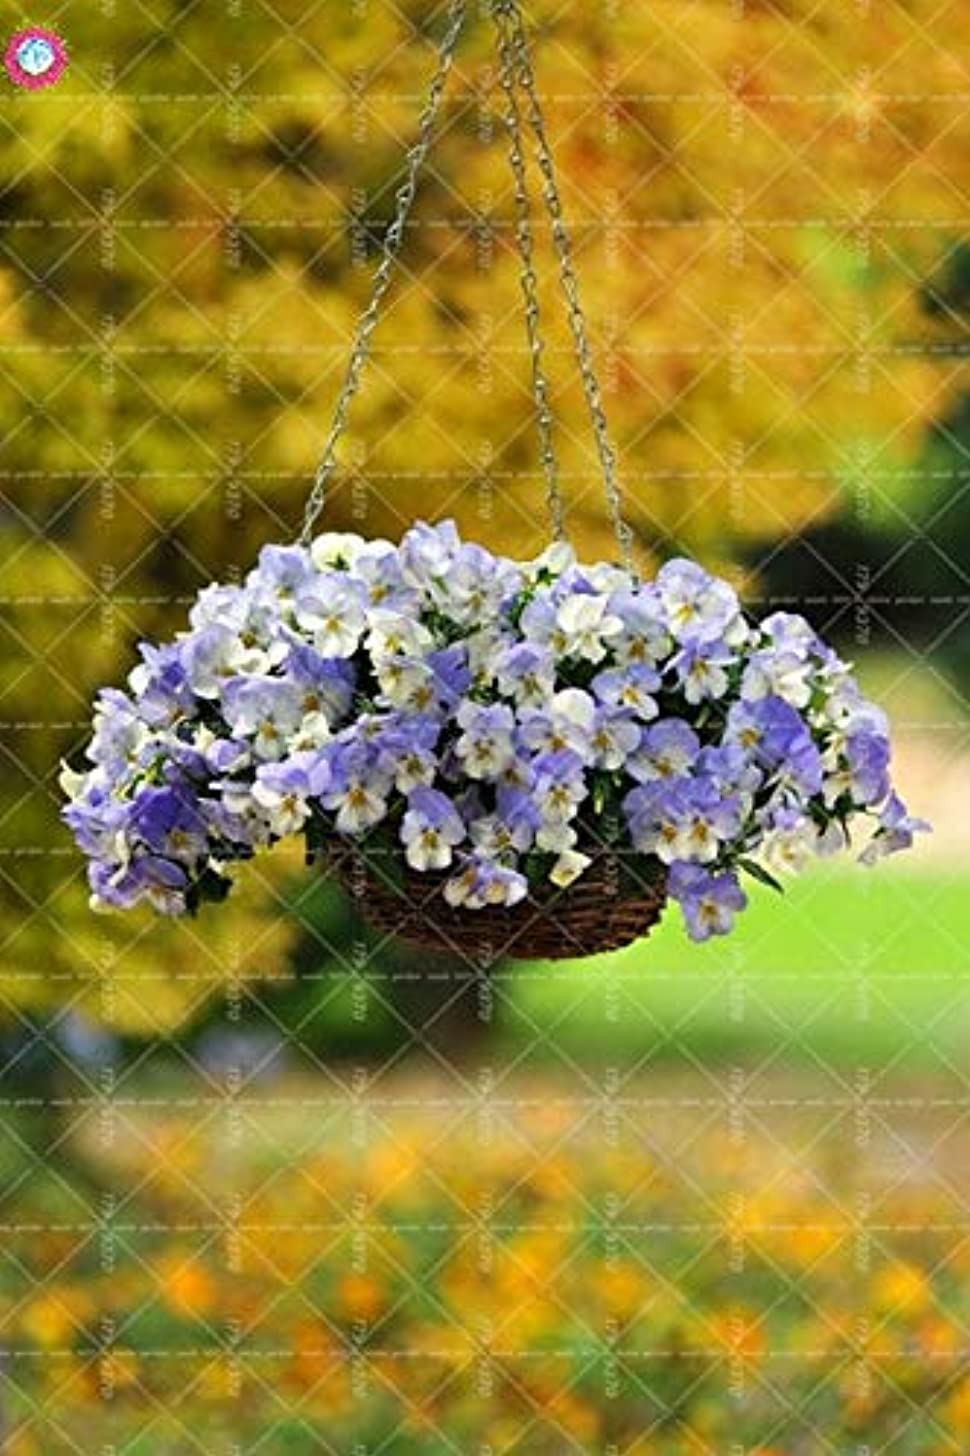 100pcs Hanging Pansy Viola Tricolor Seeds Rare Flower Perennial Outdoor herb Decorate The House Garden Pot Plants